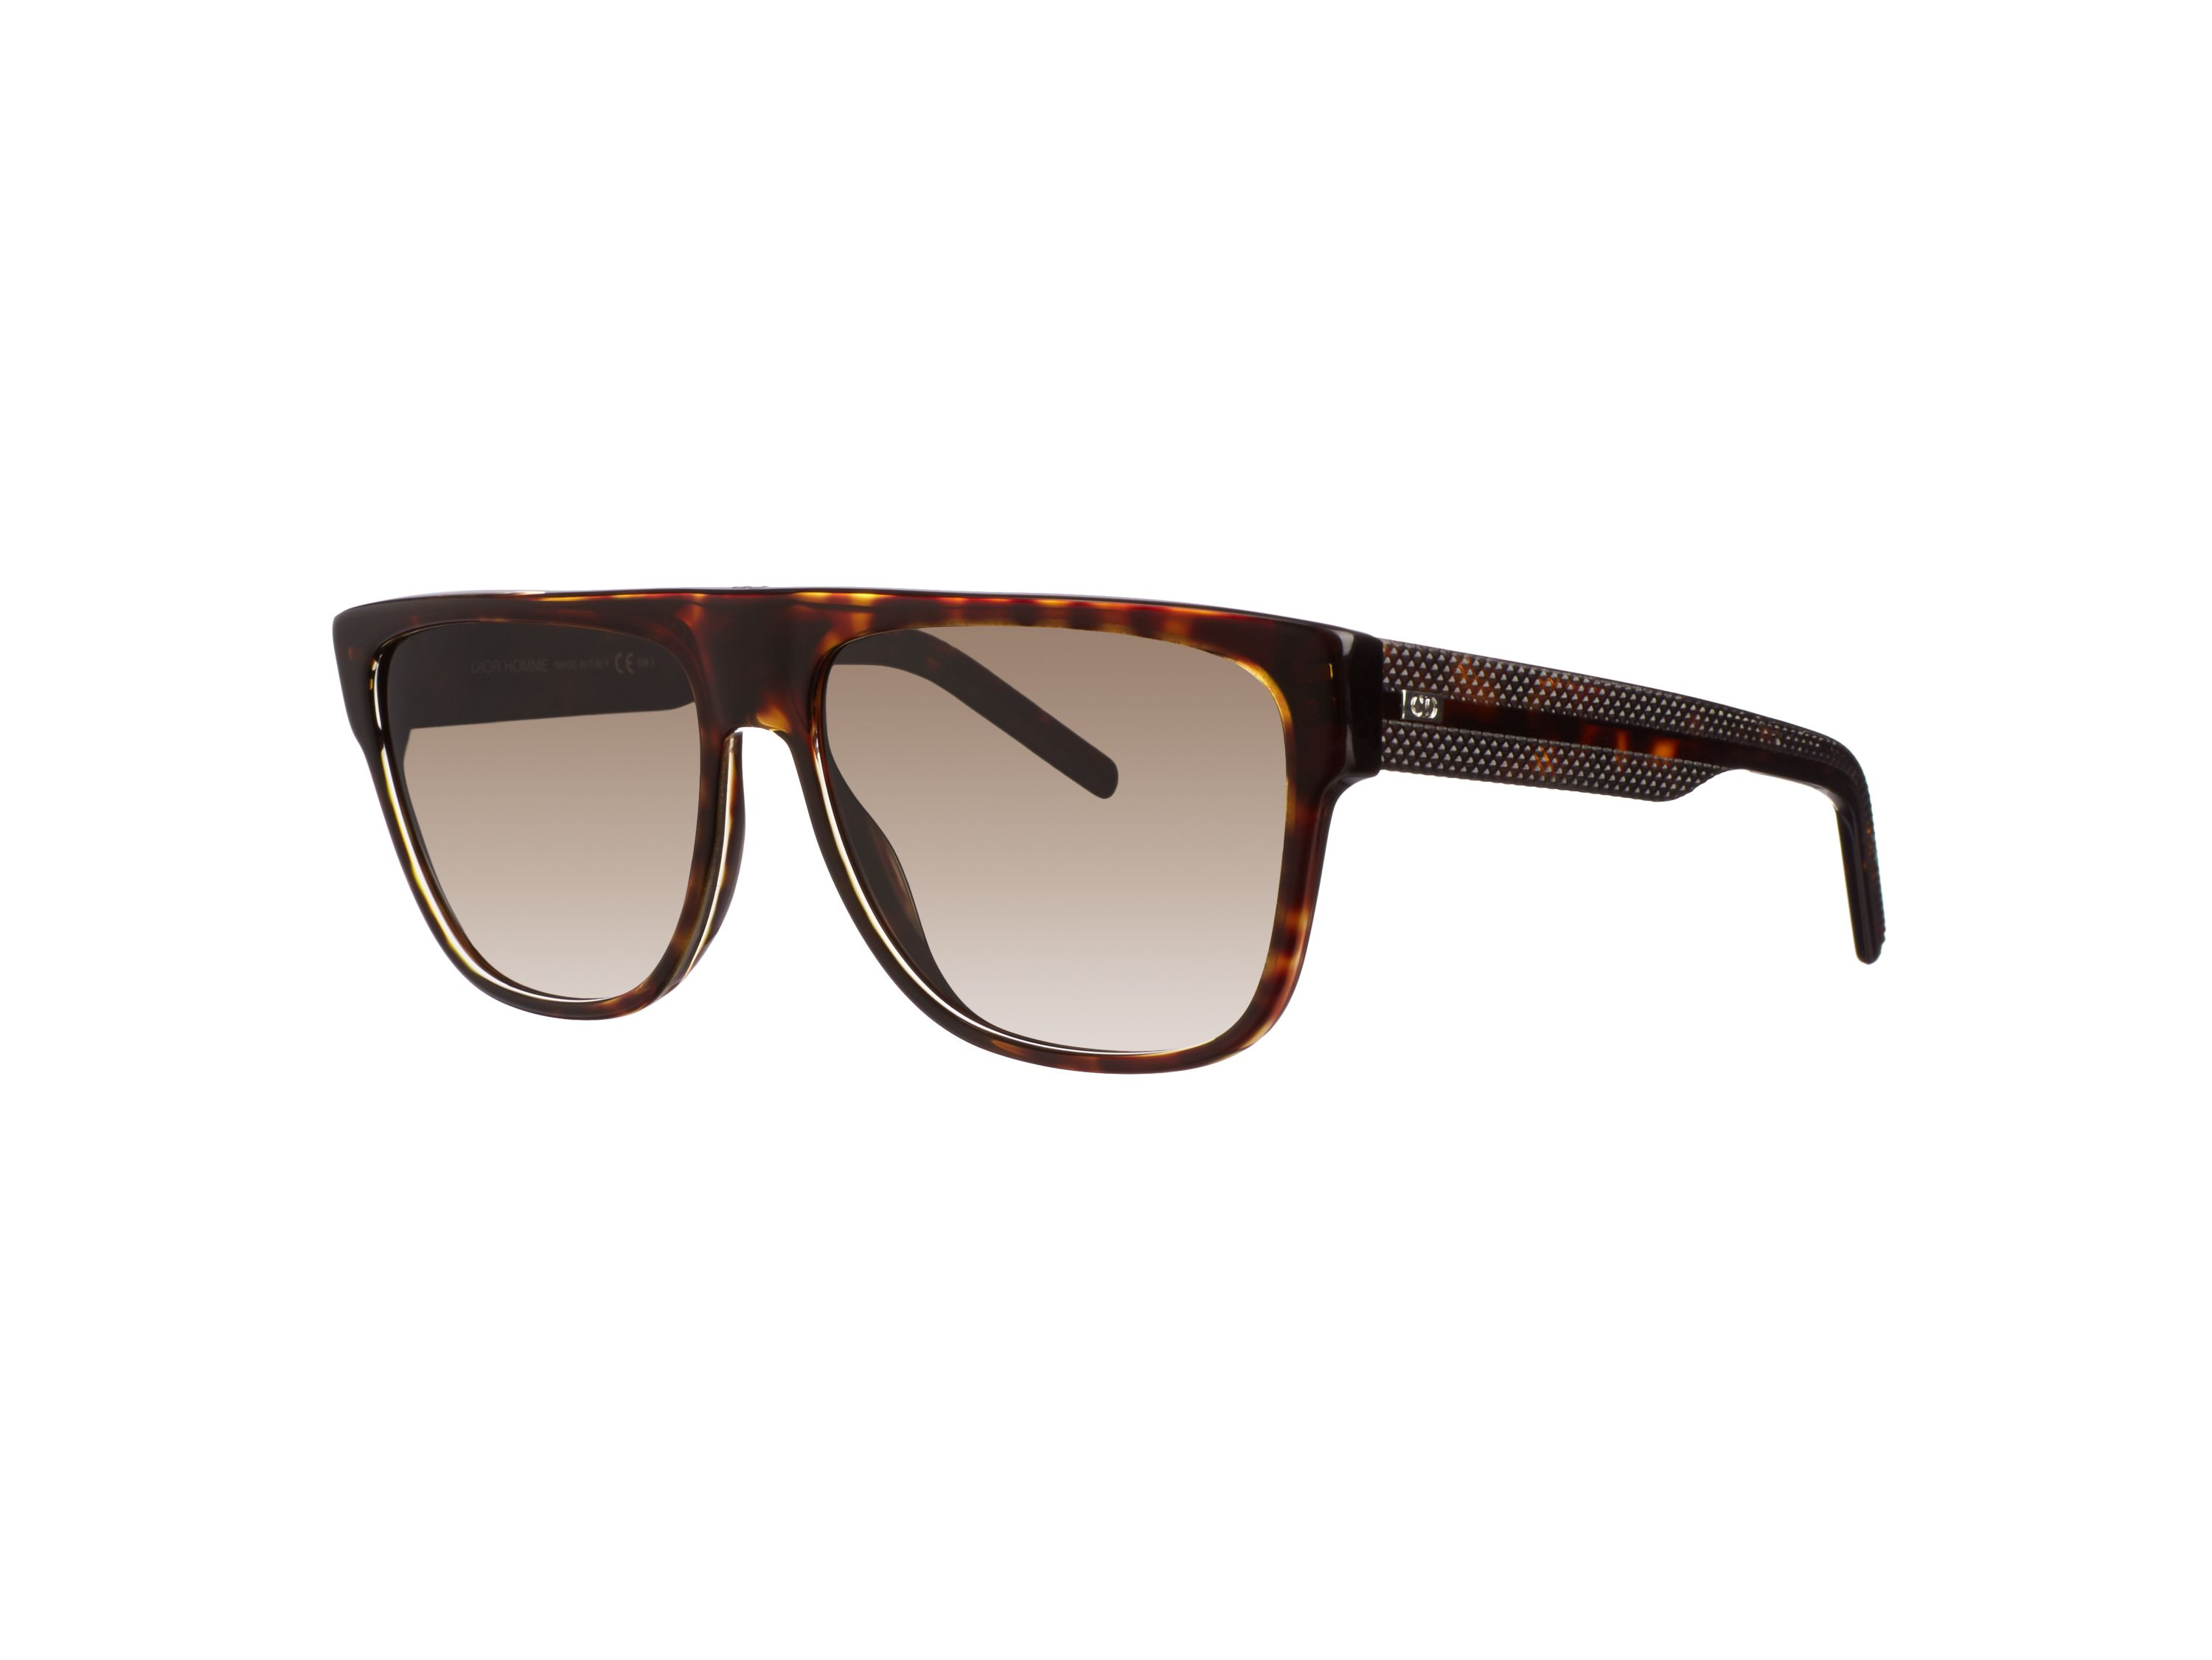 Men`s brown rectangular sunglasses